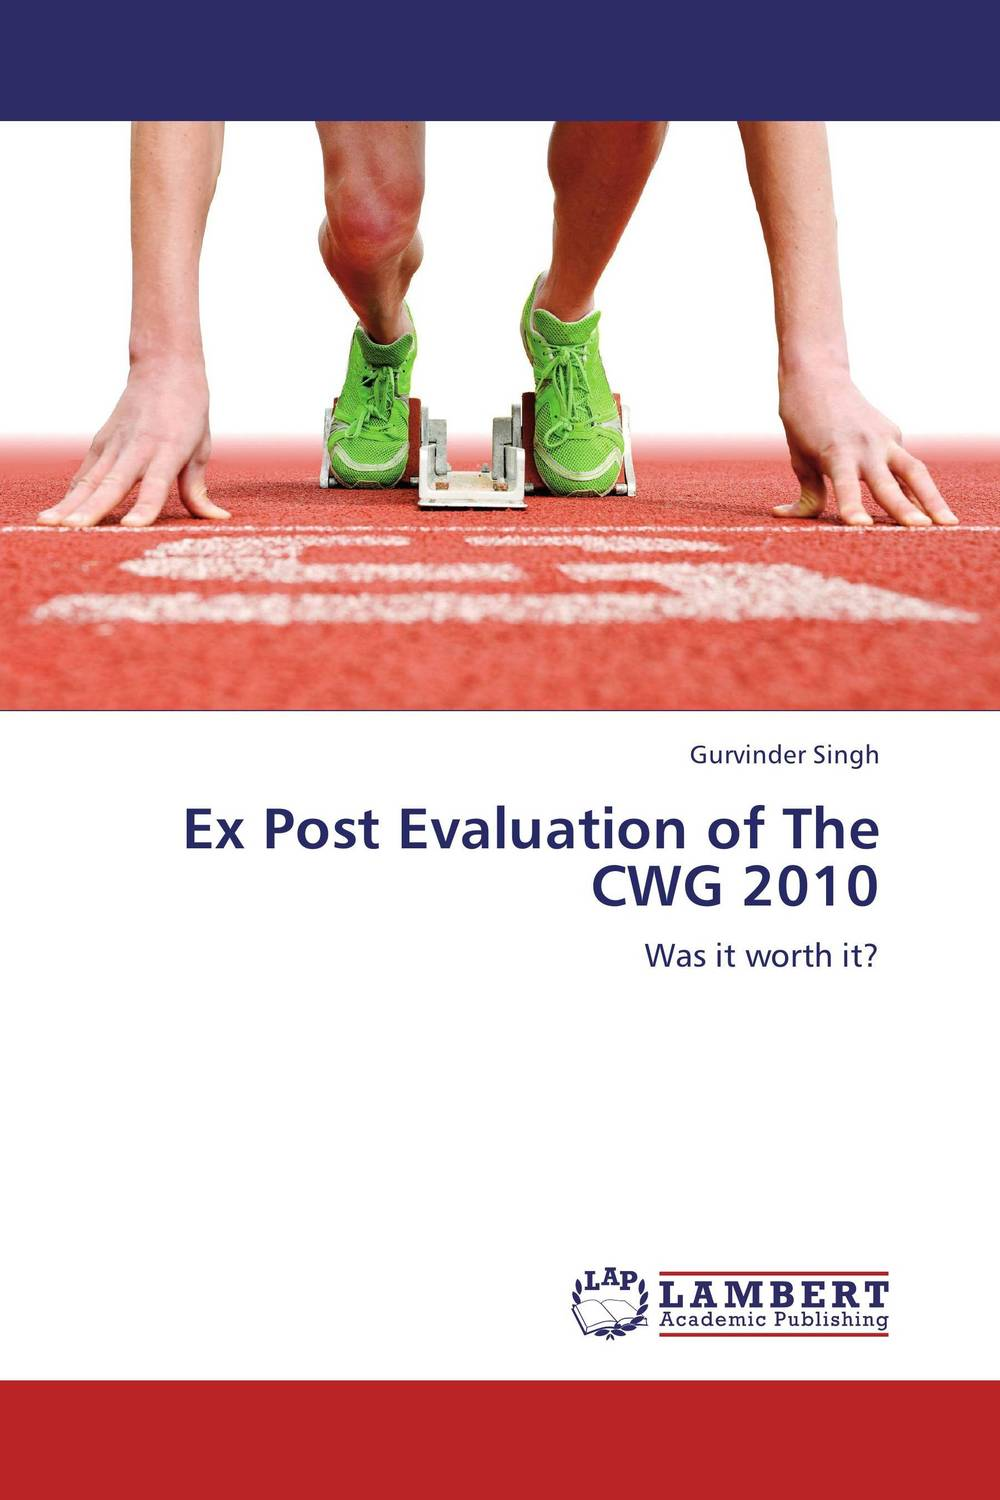 Ex Post Evaluation of The CWG 2010 evaluation of the impact of a mega sporting event